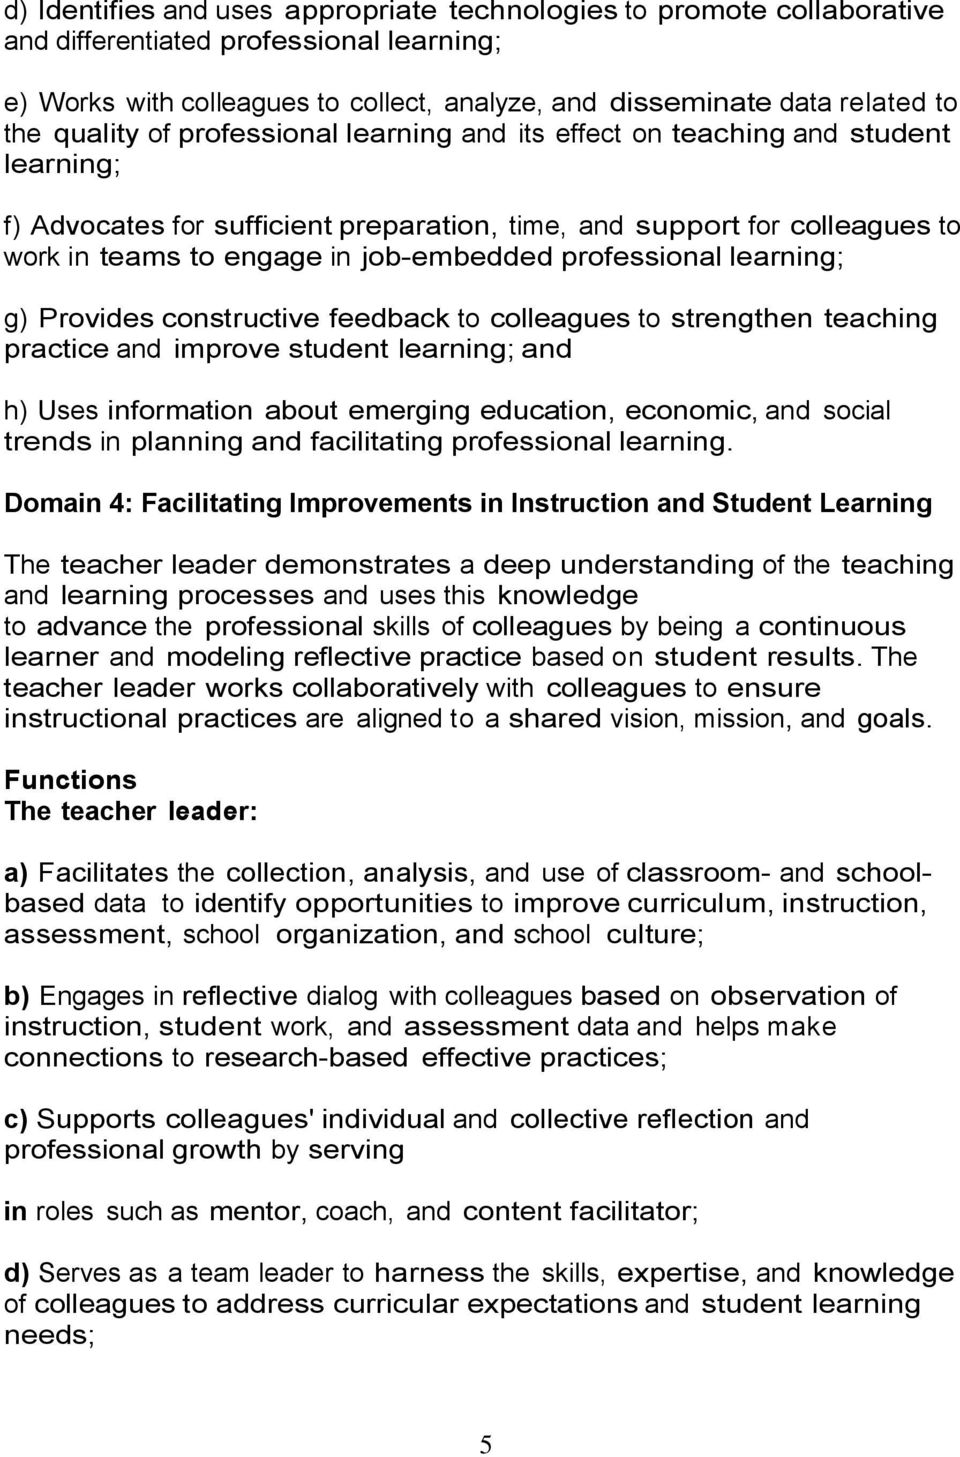 professional learning; g) Provides constructive feedback to colleagues to strengthen teaching practice and improve student learning; and h) Uses information about emerging education, economic, and